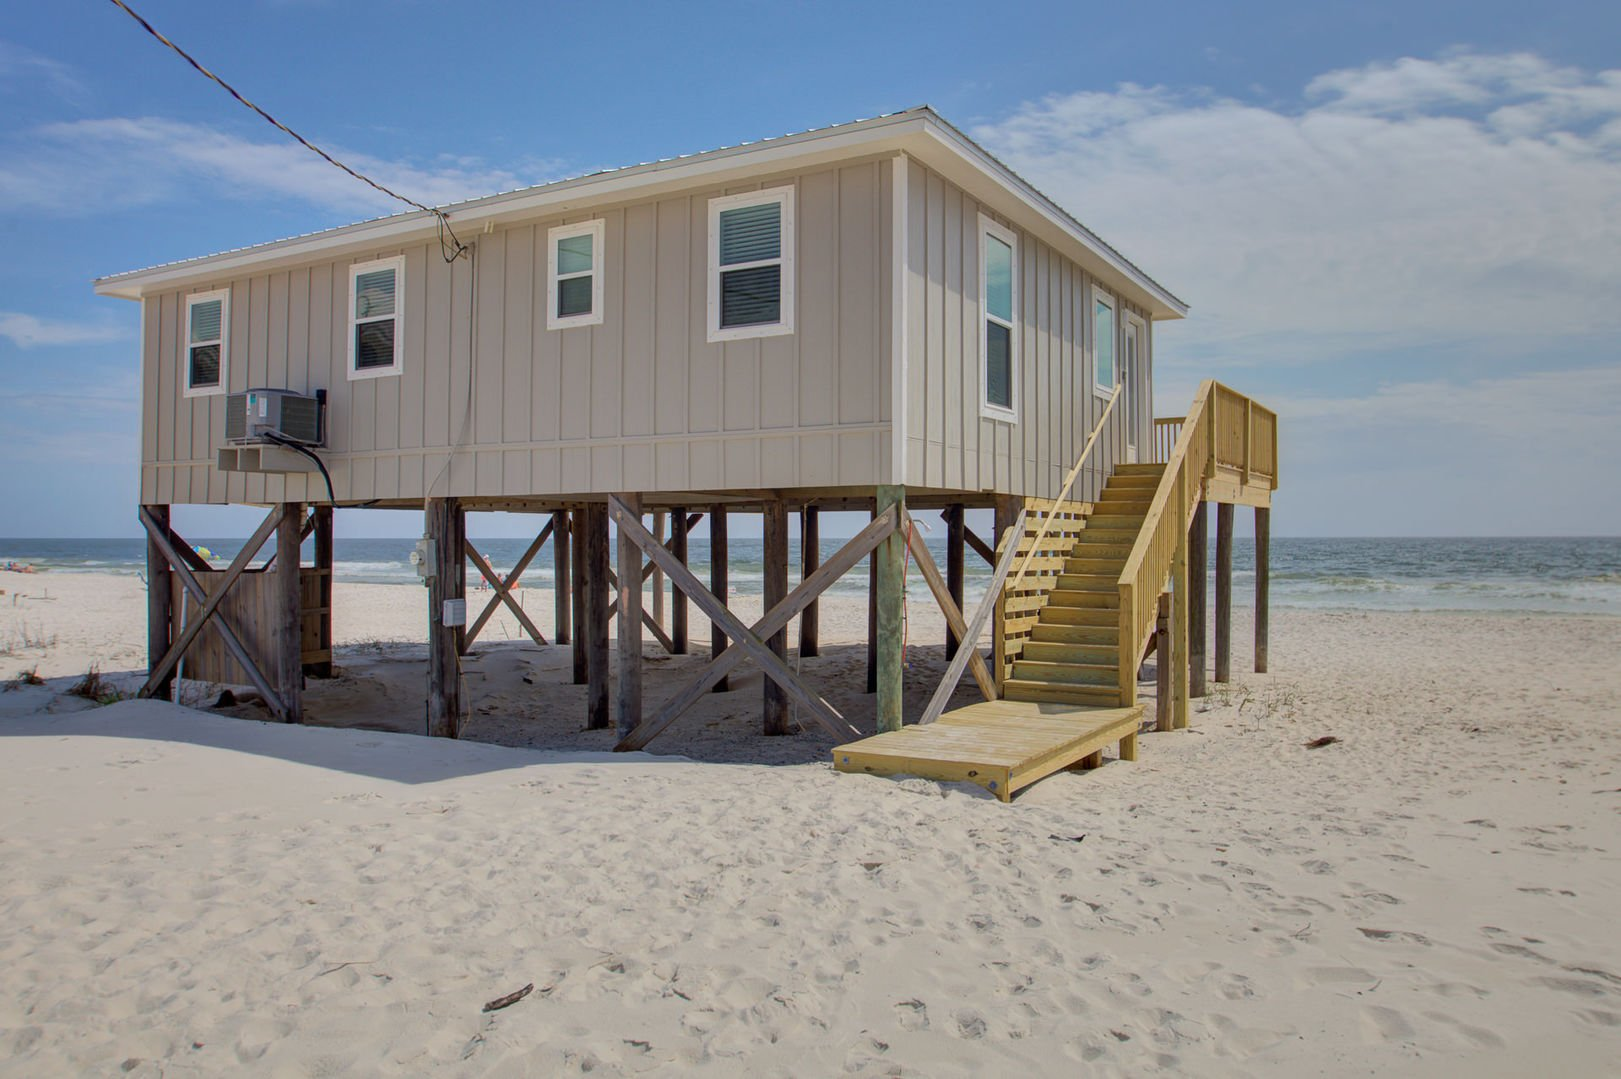 View of the outdoor section of this beachfront Gulf Shores rental